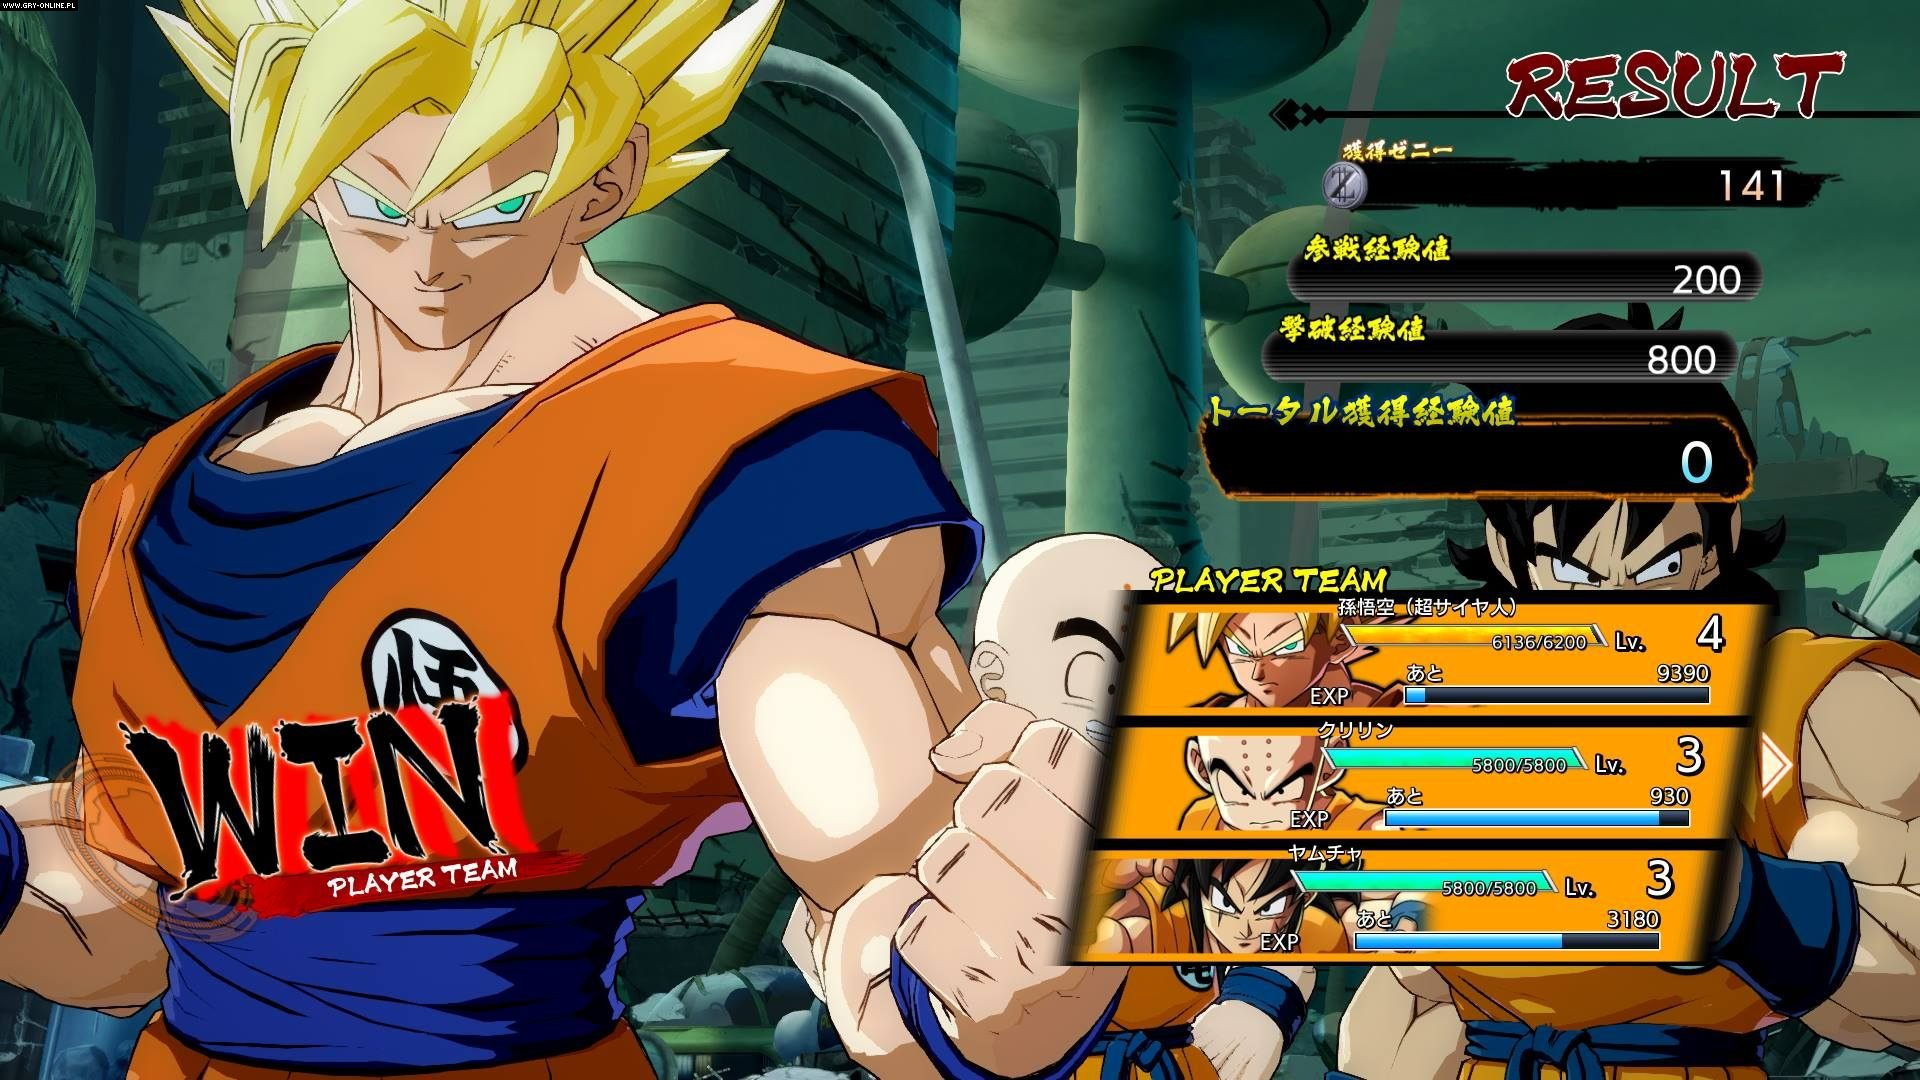 Dragon Ball FighterZ PC, PS4, XONE, Switch Gry Screen 161/230, Arc System Works, Bandai Namco Entertainment